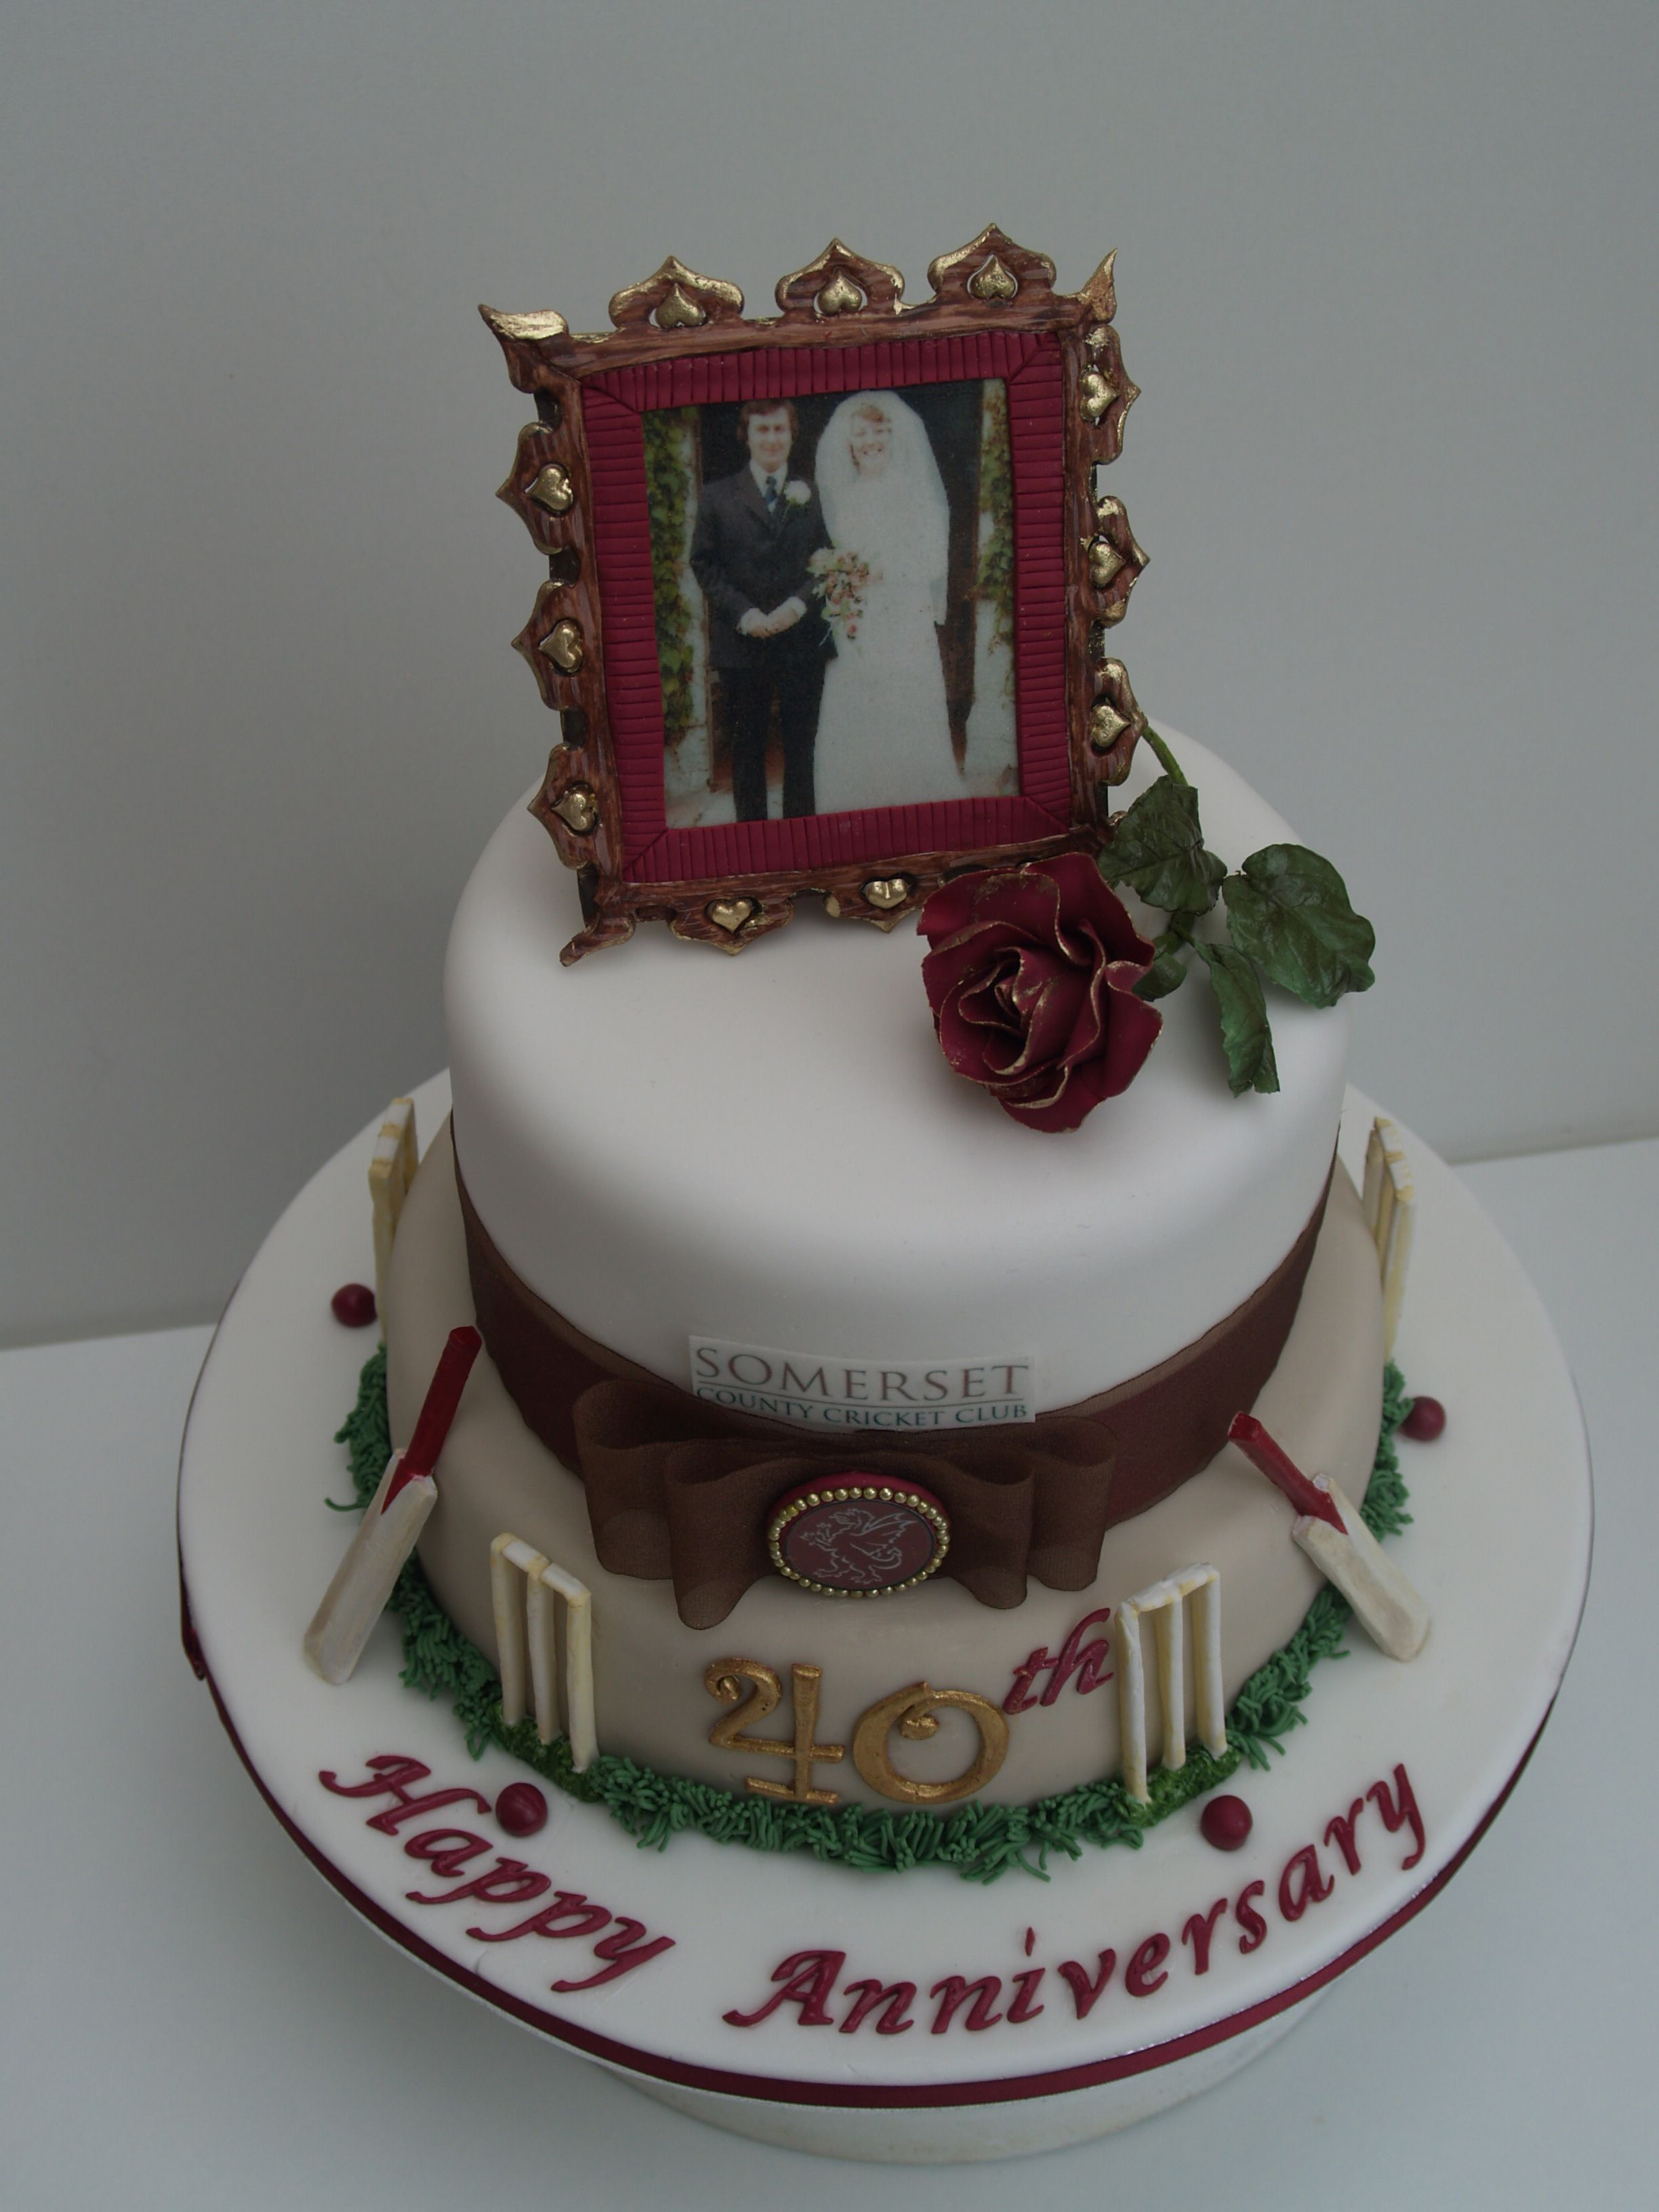 Lovely Cricket Themed 40th Anniversary Cake With Edible Picture And Frame   An Anniversary  Cake For Two